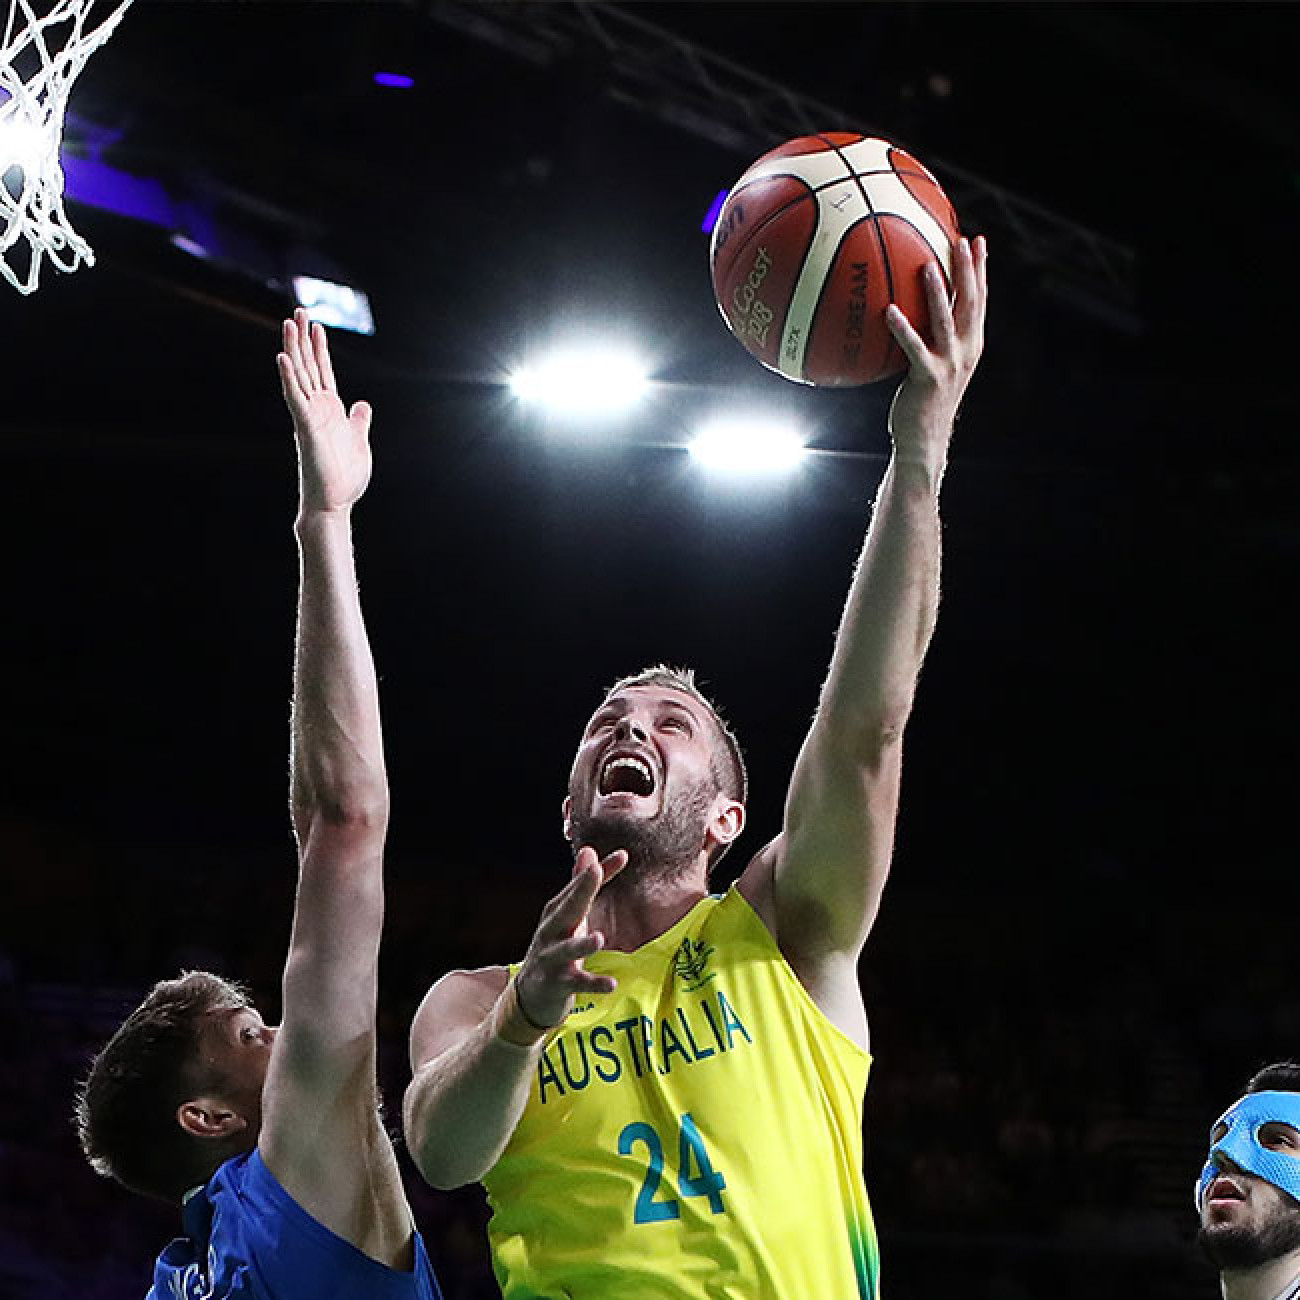 Jesse Wagstaff of Australia drives at the basket during the men's semifinal match between Australia and Scotland.